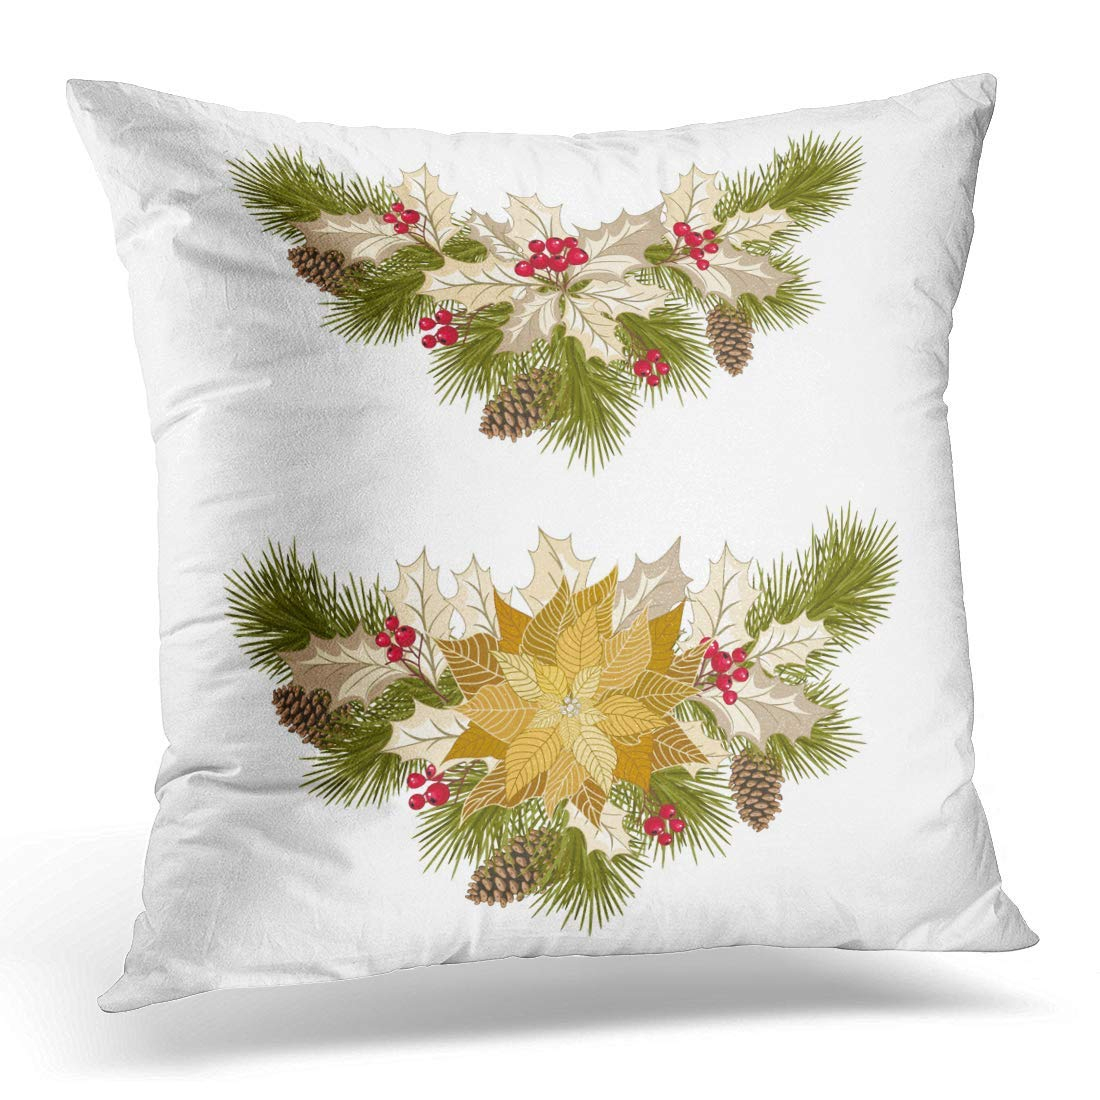 USART Berry Christmas with Golden Poinsettia Fir Tree Pine Cones Holly Berries and Design in Gold Style Pillow Case Pillow Cover 20x20 inch